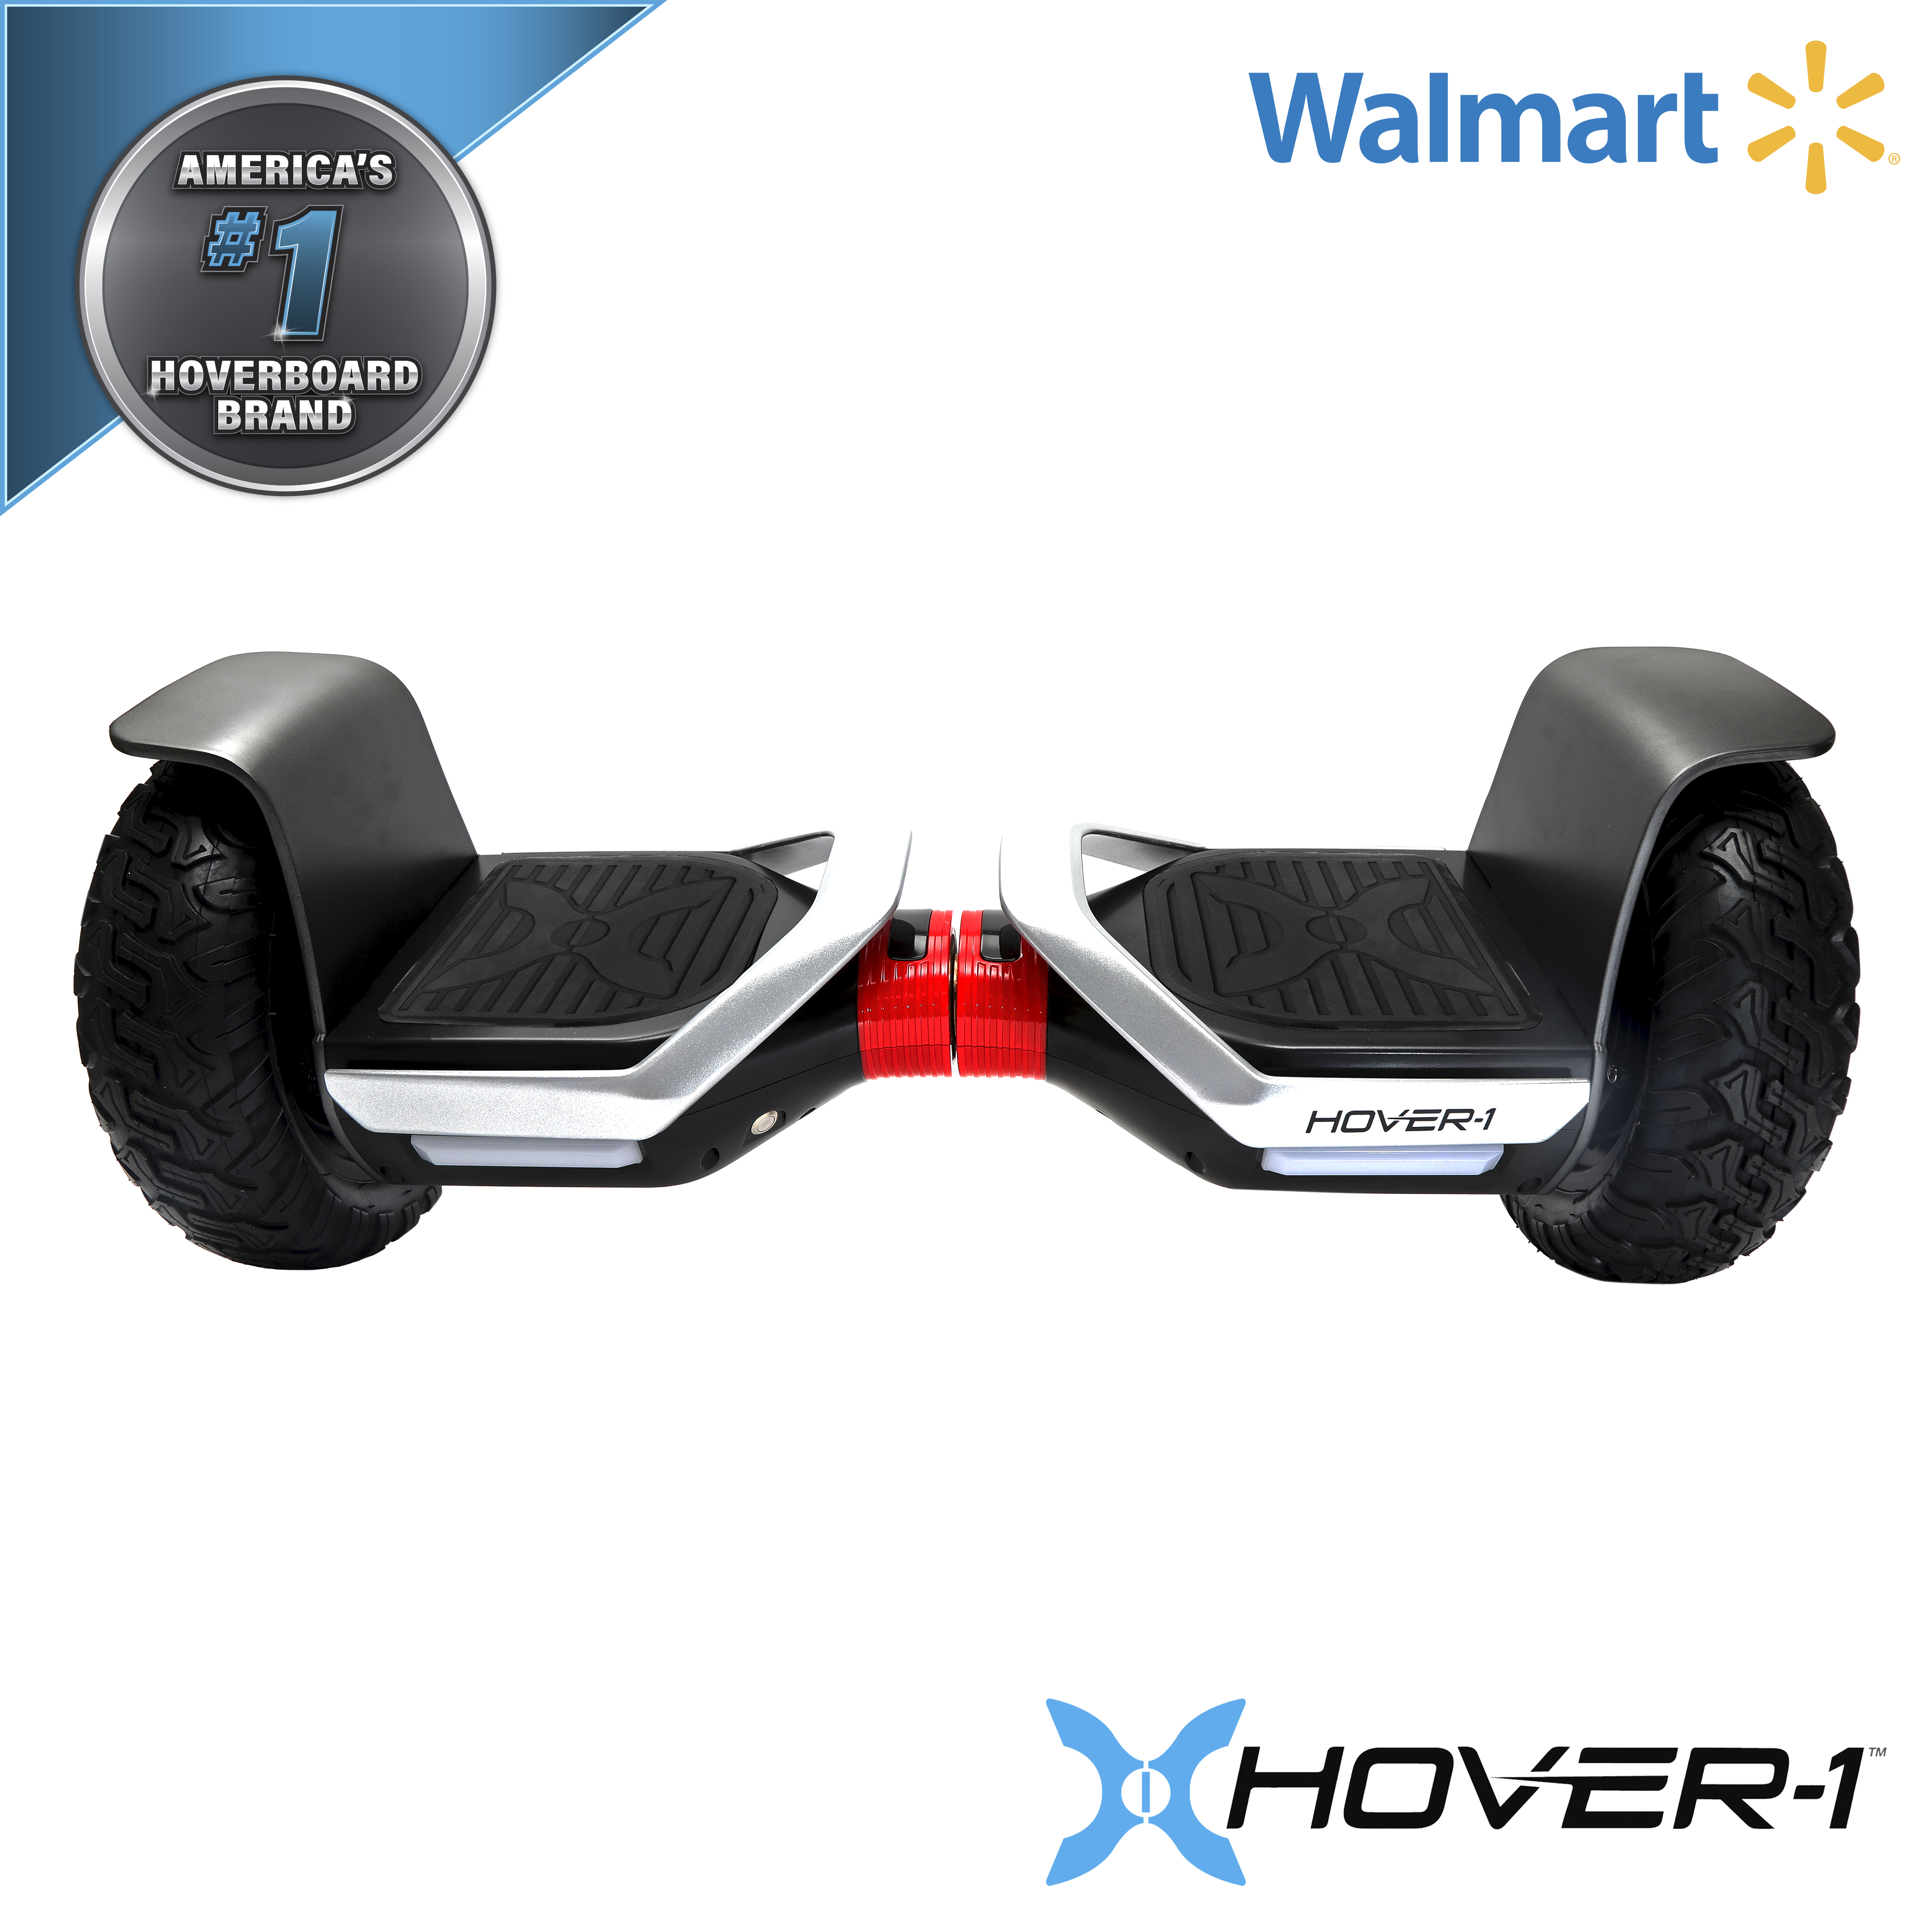 Hover-1 Hoverboard Bluetooth Speaker Self Balancing Hover Board Electric Scooter for Kids and Adults 24 x 8 x 8.5